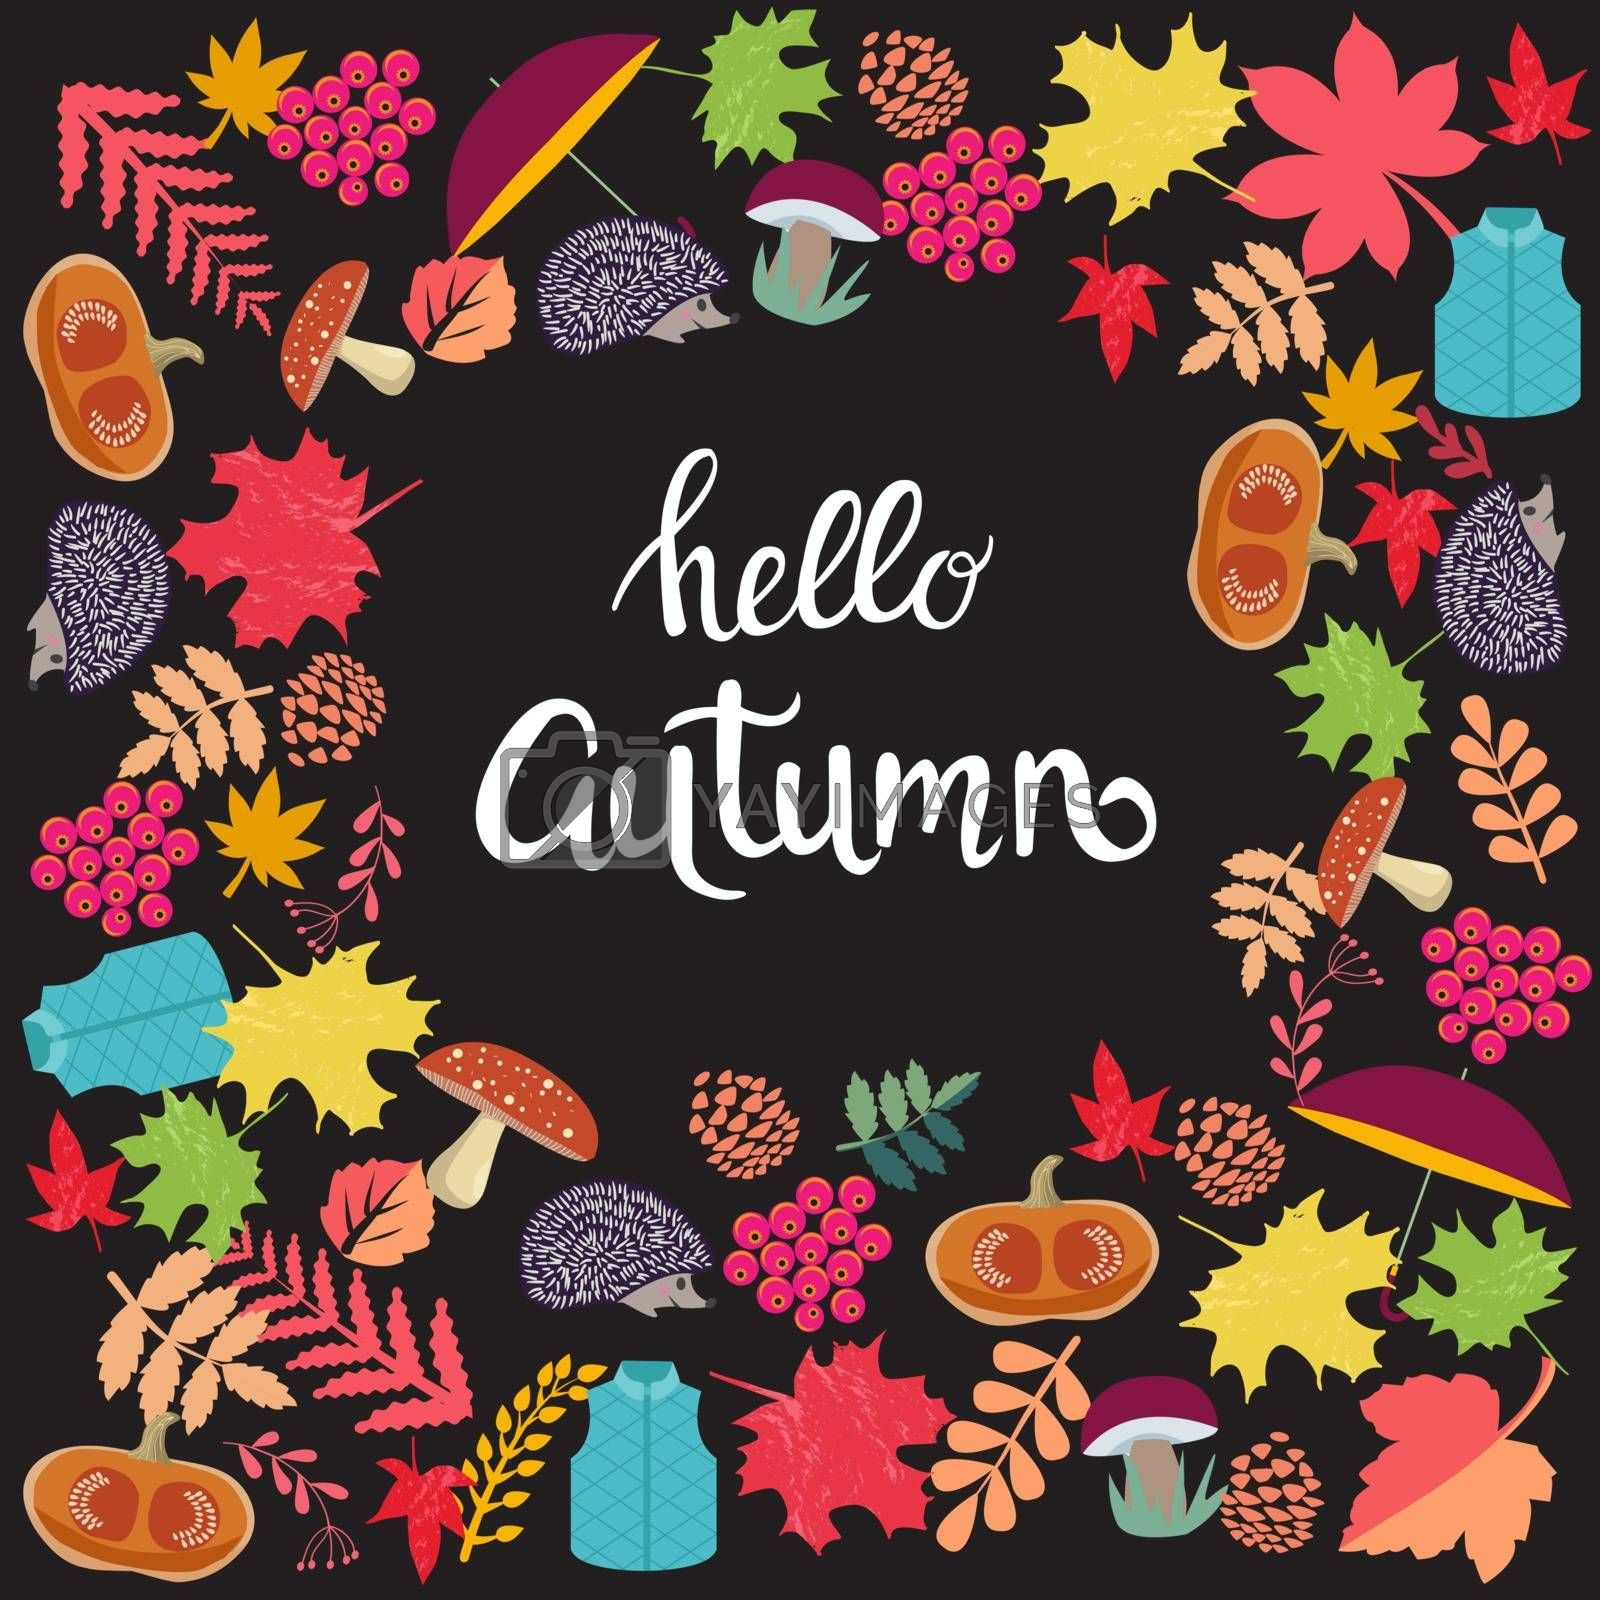 Cute background with Autumn Season elements and inscription hello autumn on dark background.